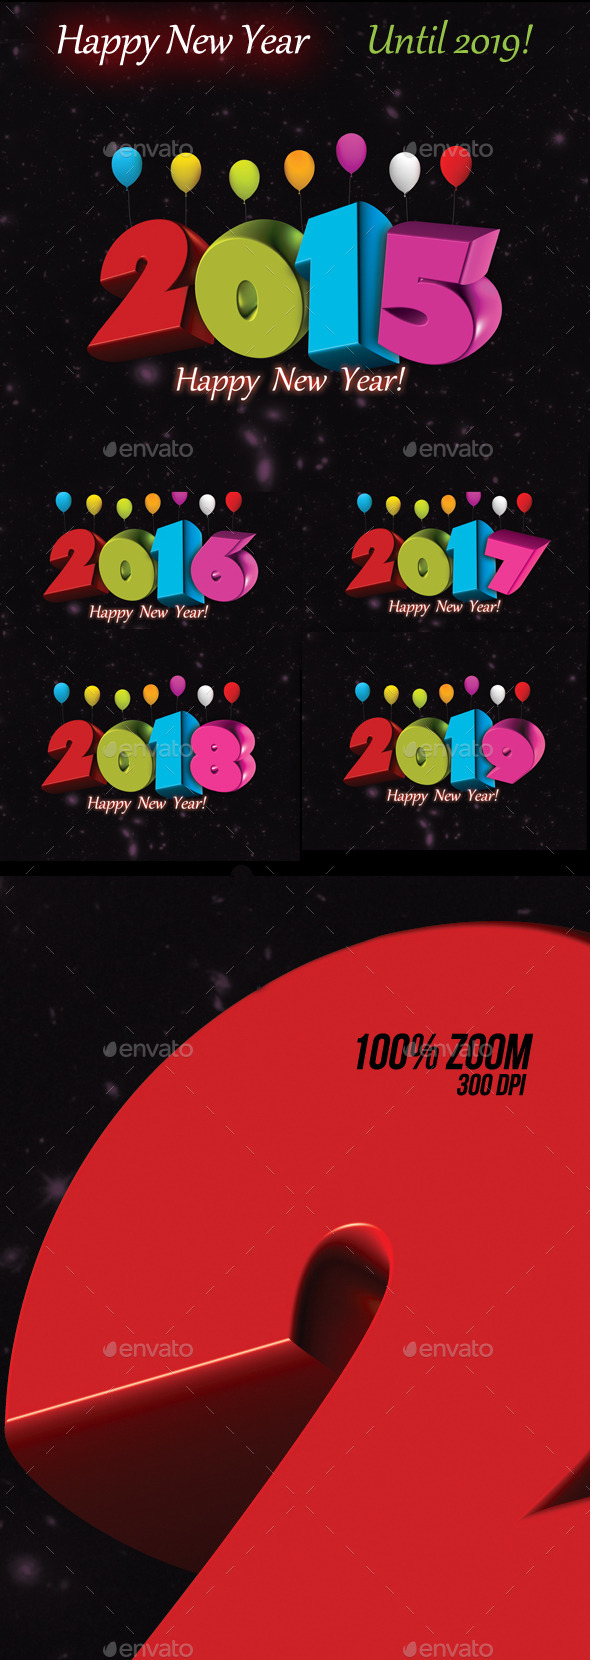 Happy New Year Set Until 2019 - Text 3D Renders